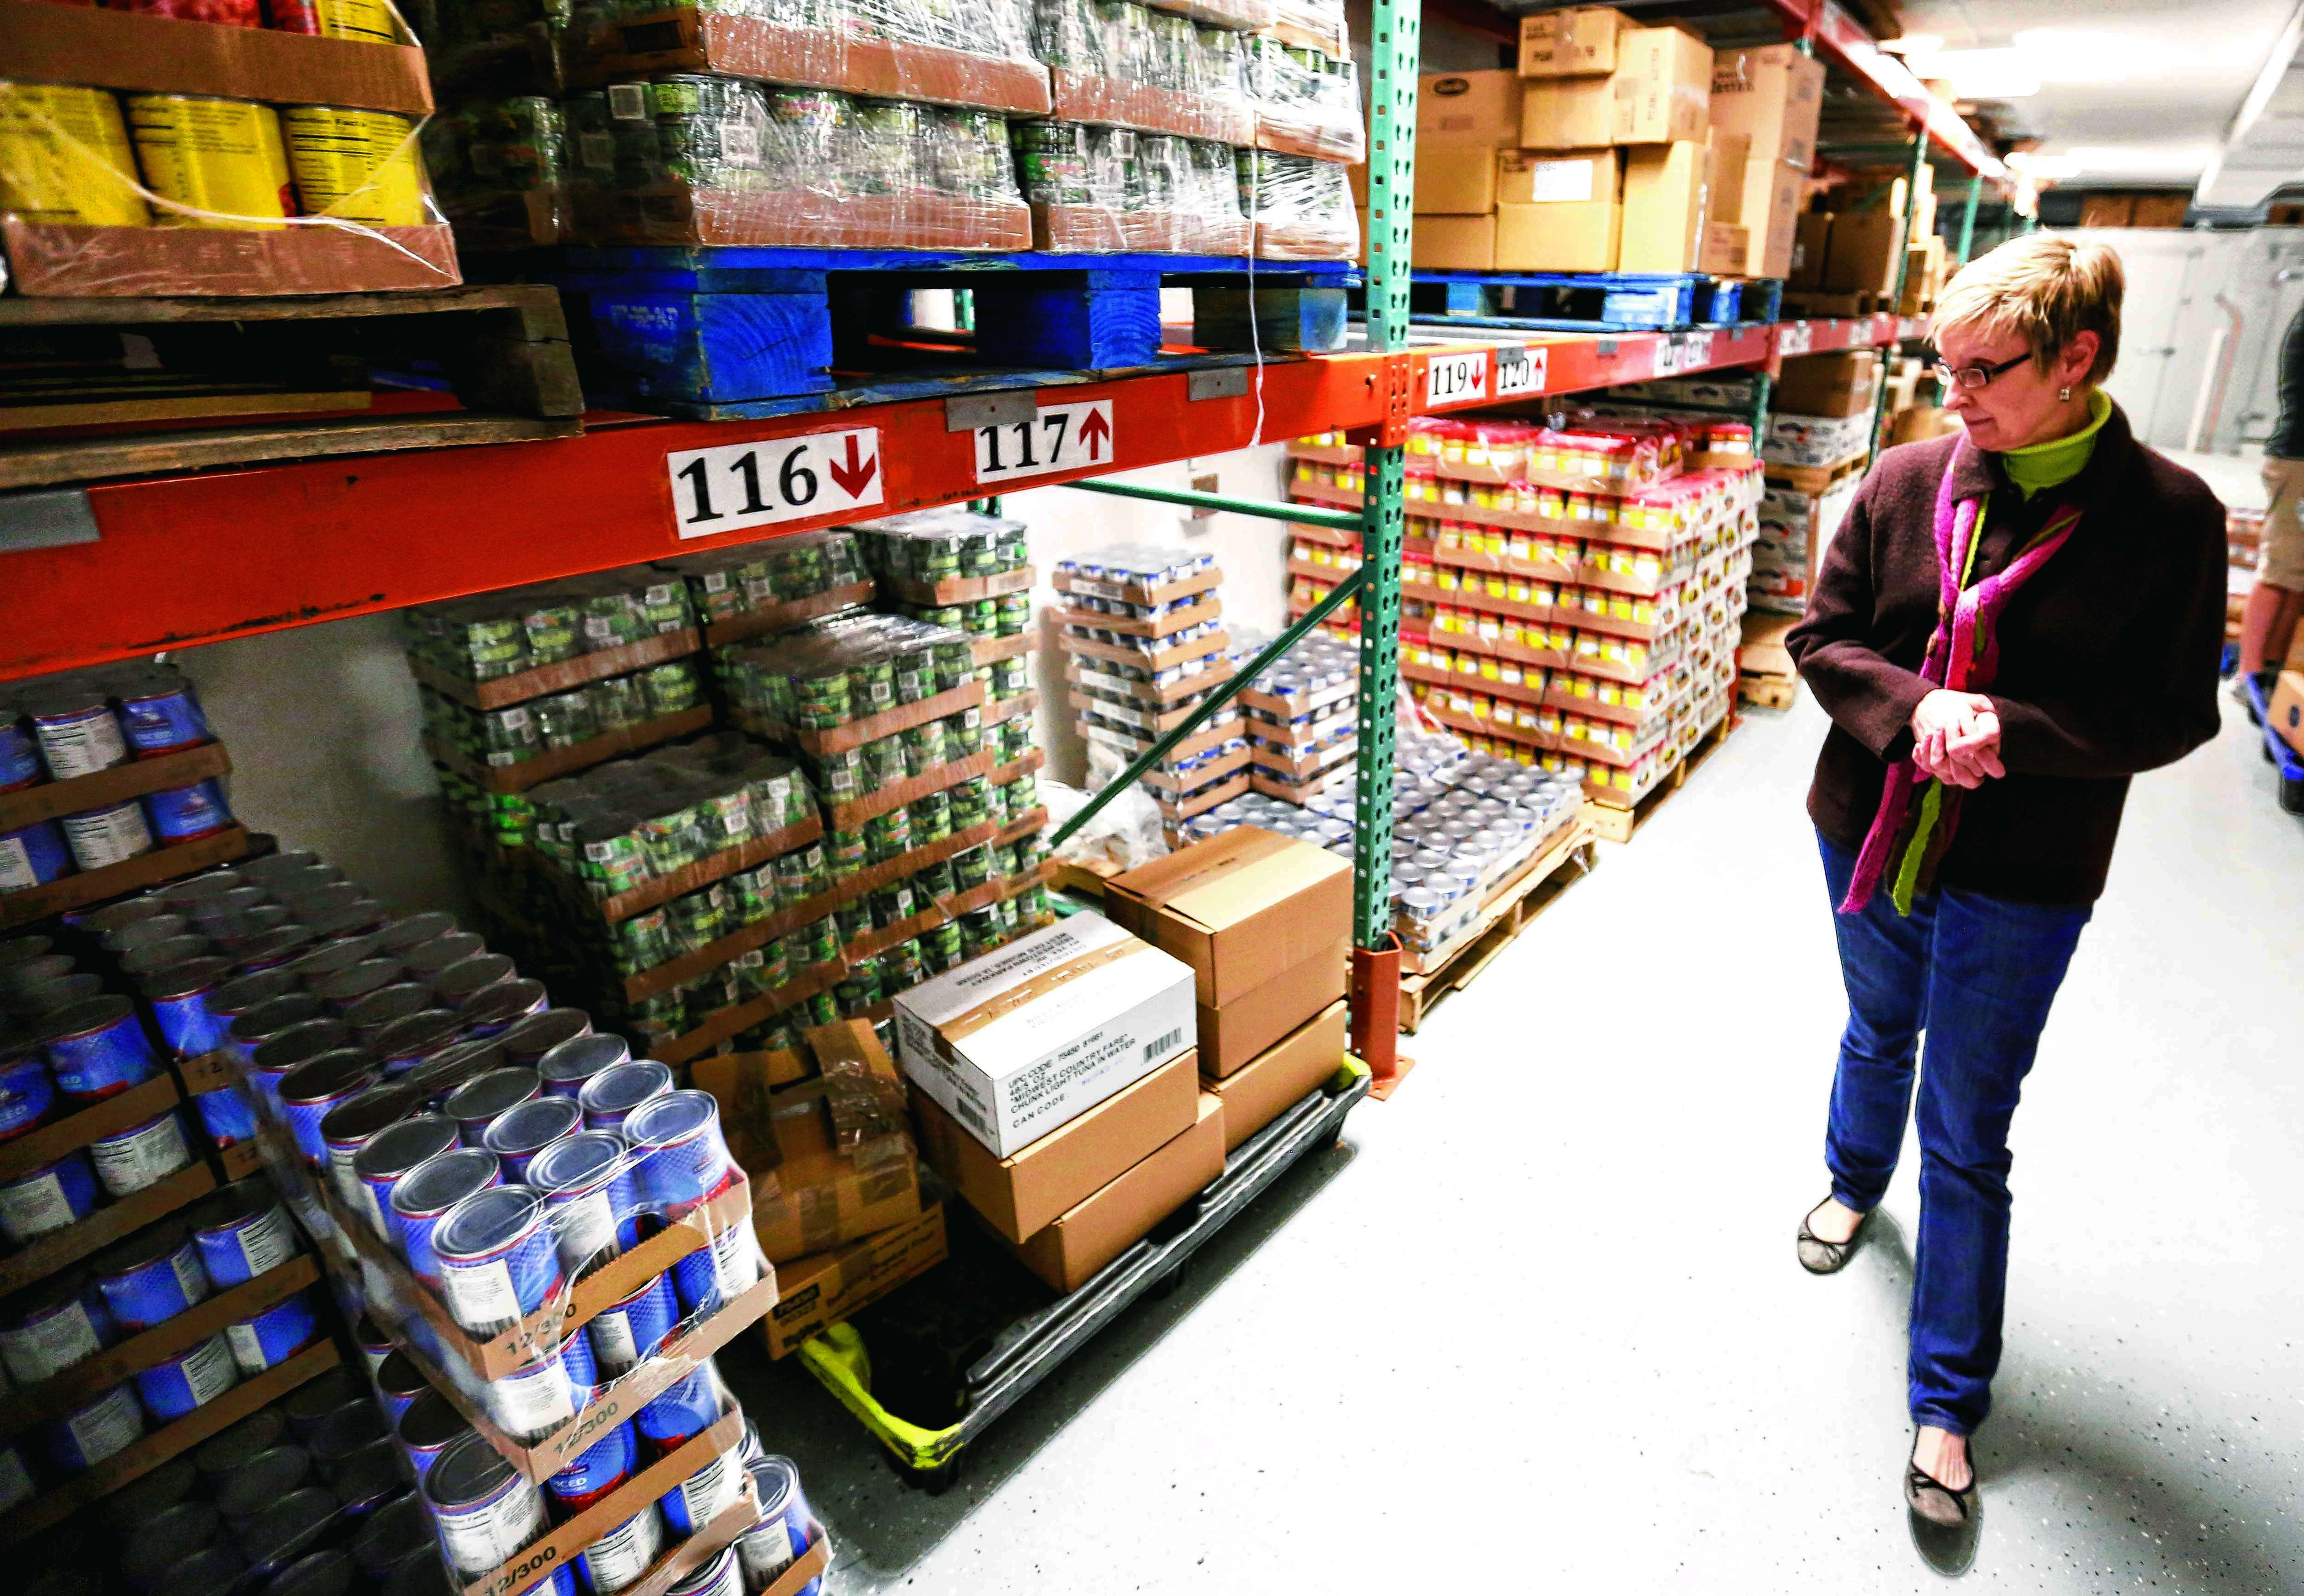 New warehouse expands food pantrys options